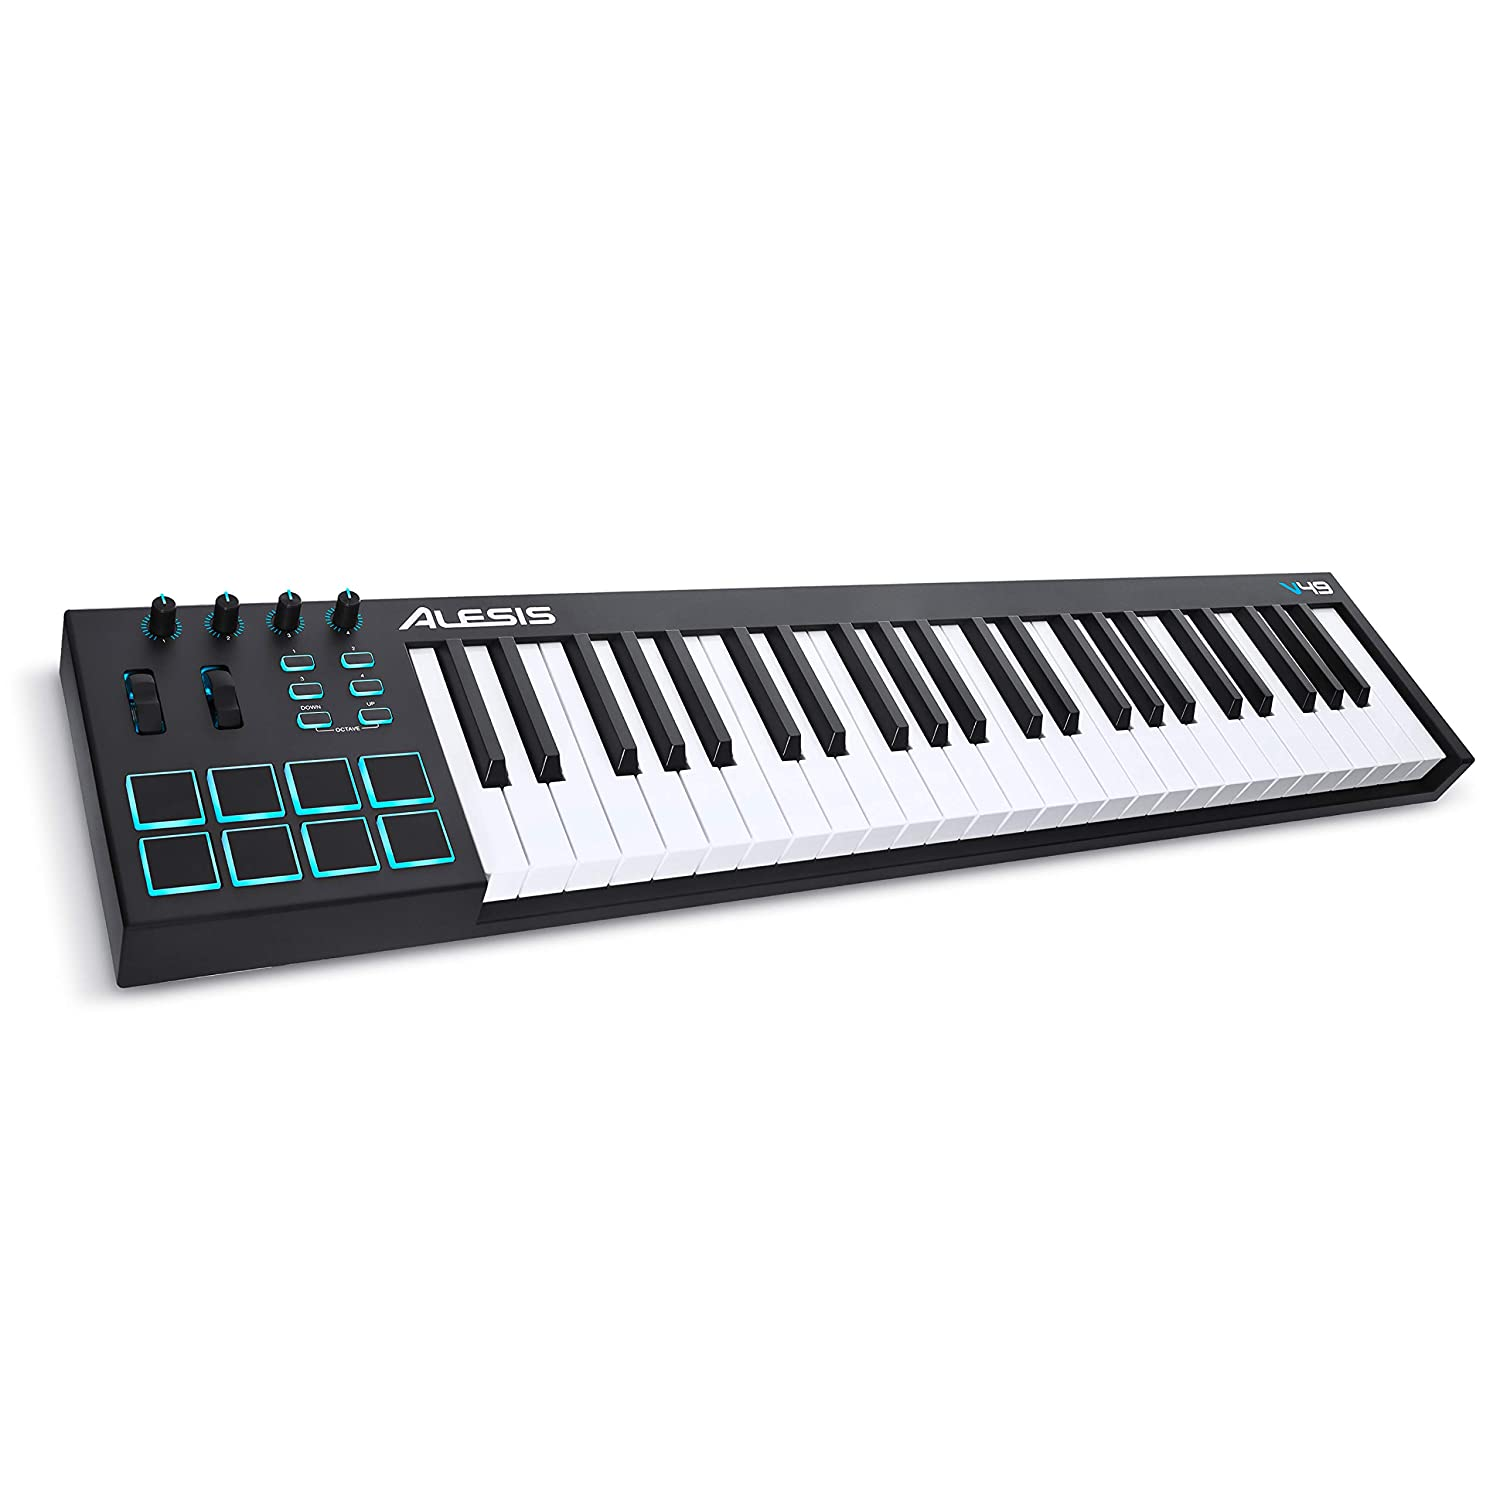 Top 13 Best MIDI Controllers for Beginners (2020 Updated) 10